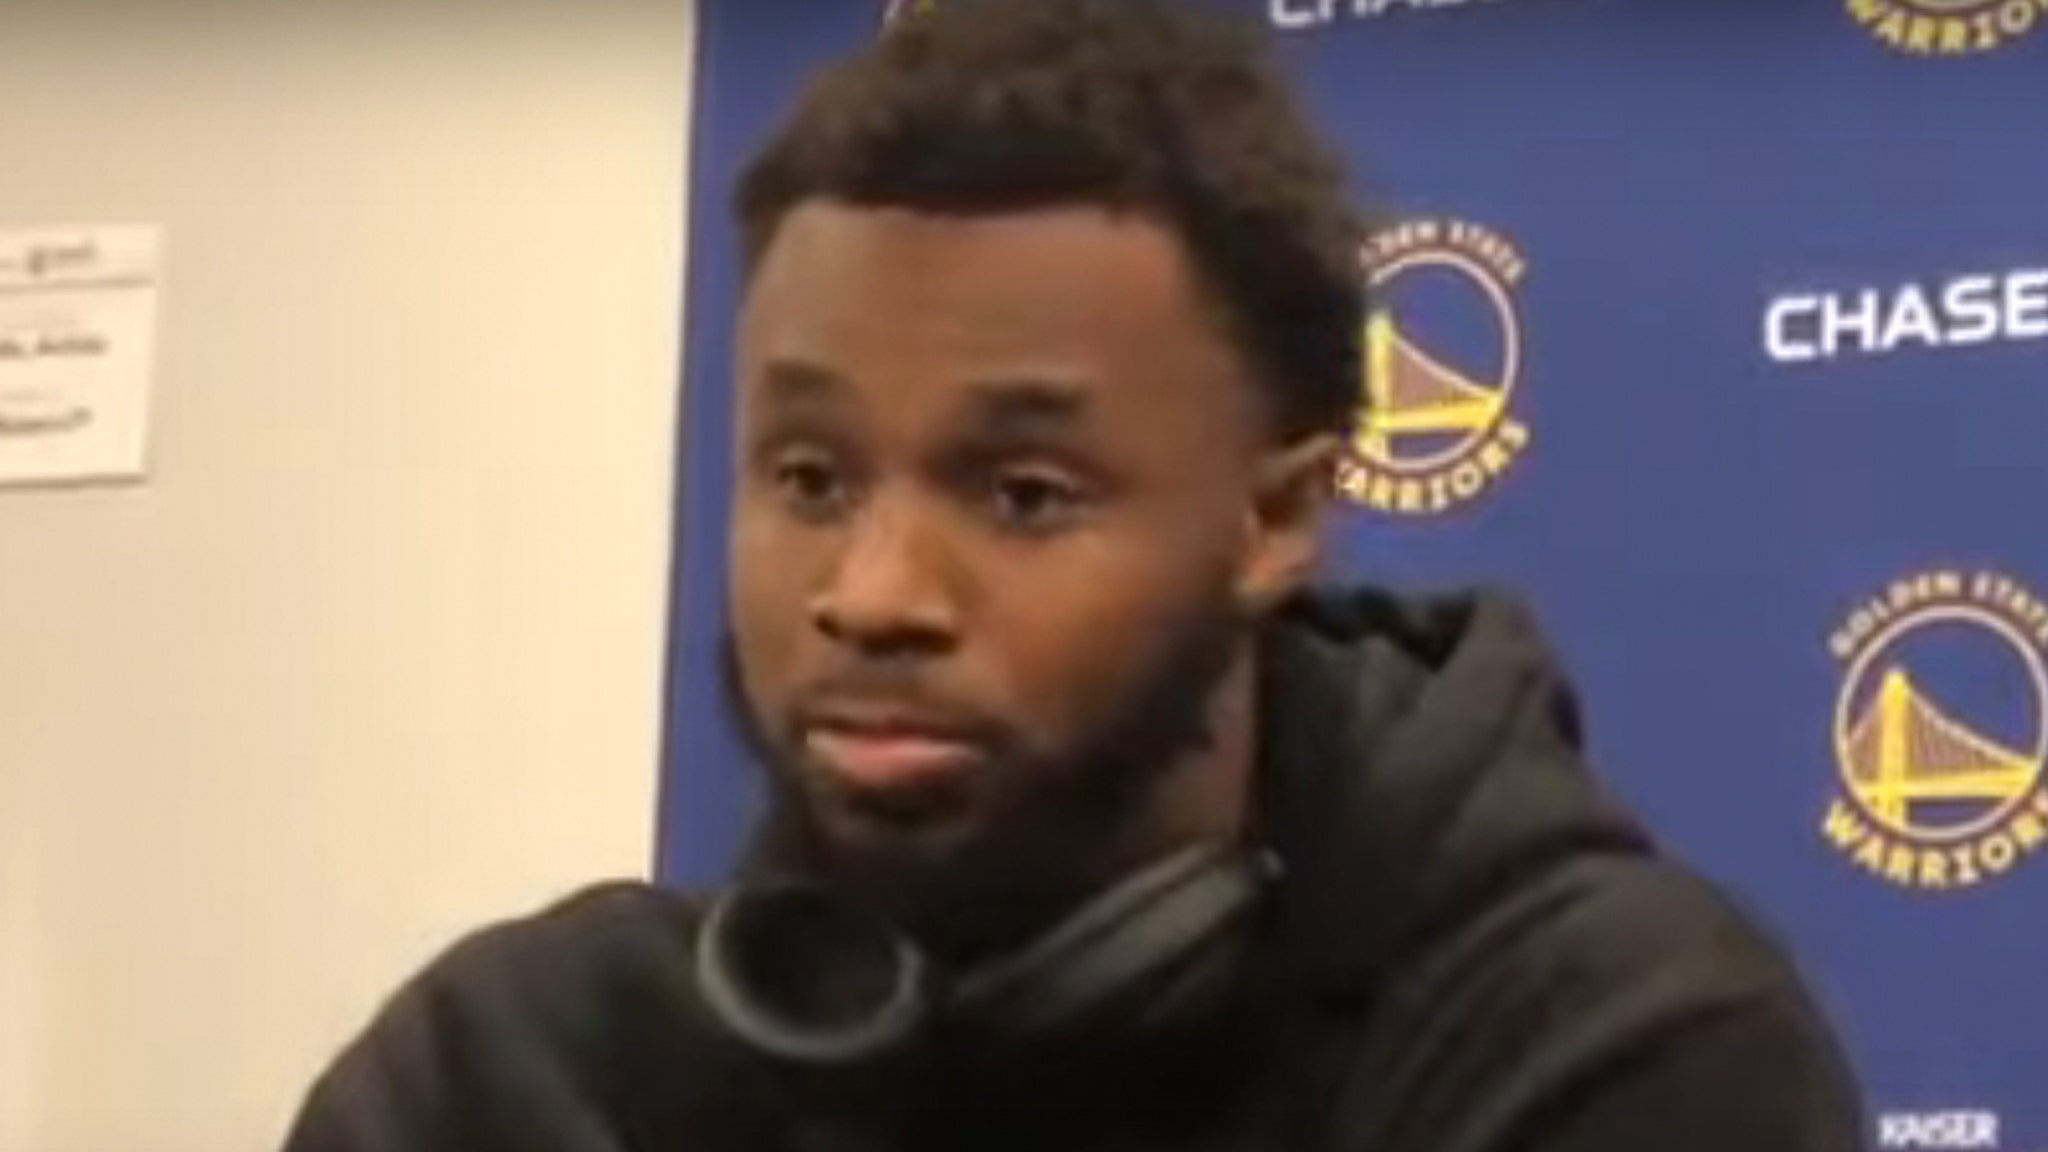 Andrew Wiggins Says He Felt 'Forced' To Get Vaccine, 'You Don't Own Your Body'